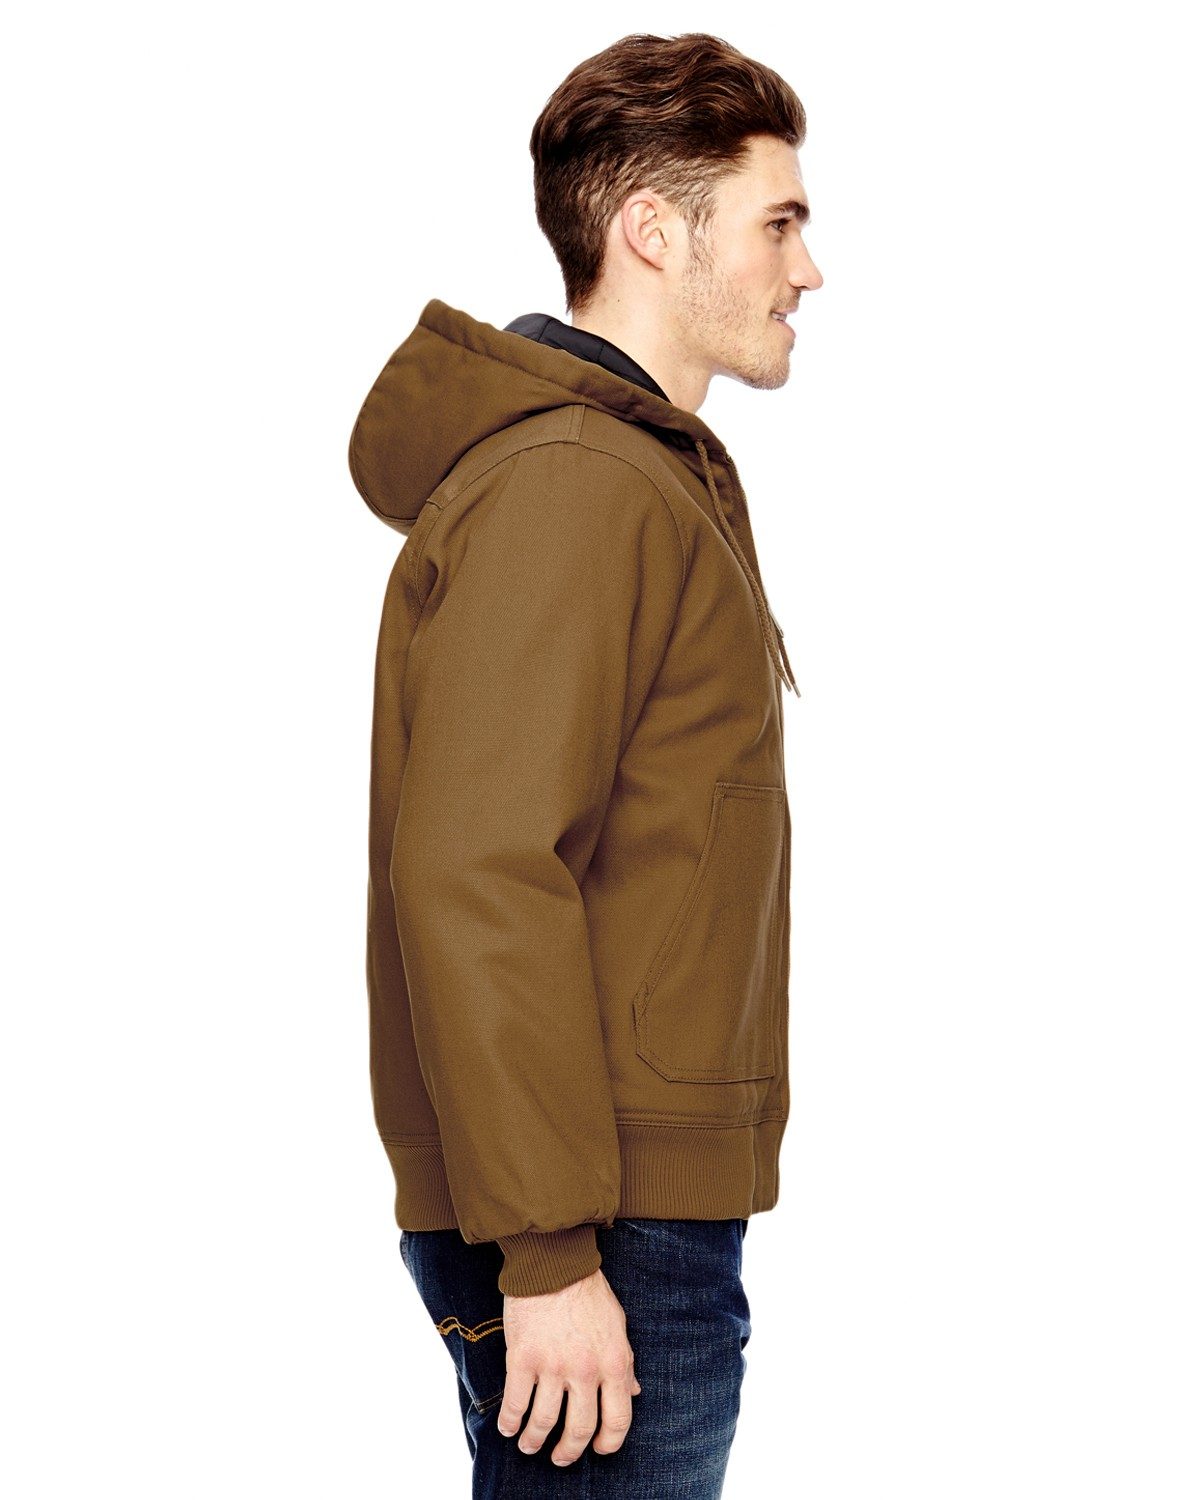 TJ718 Dickies BROWN DUCK